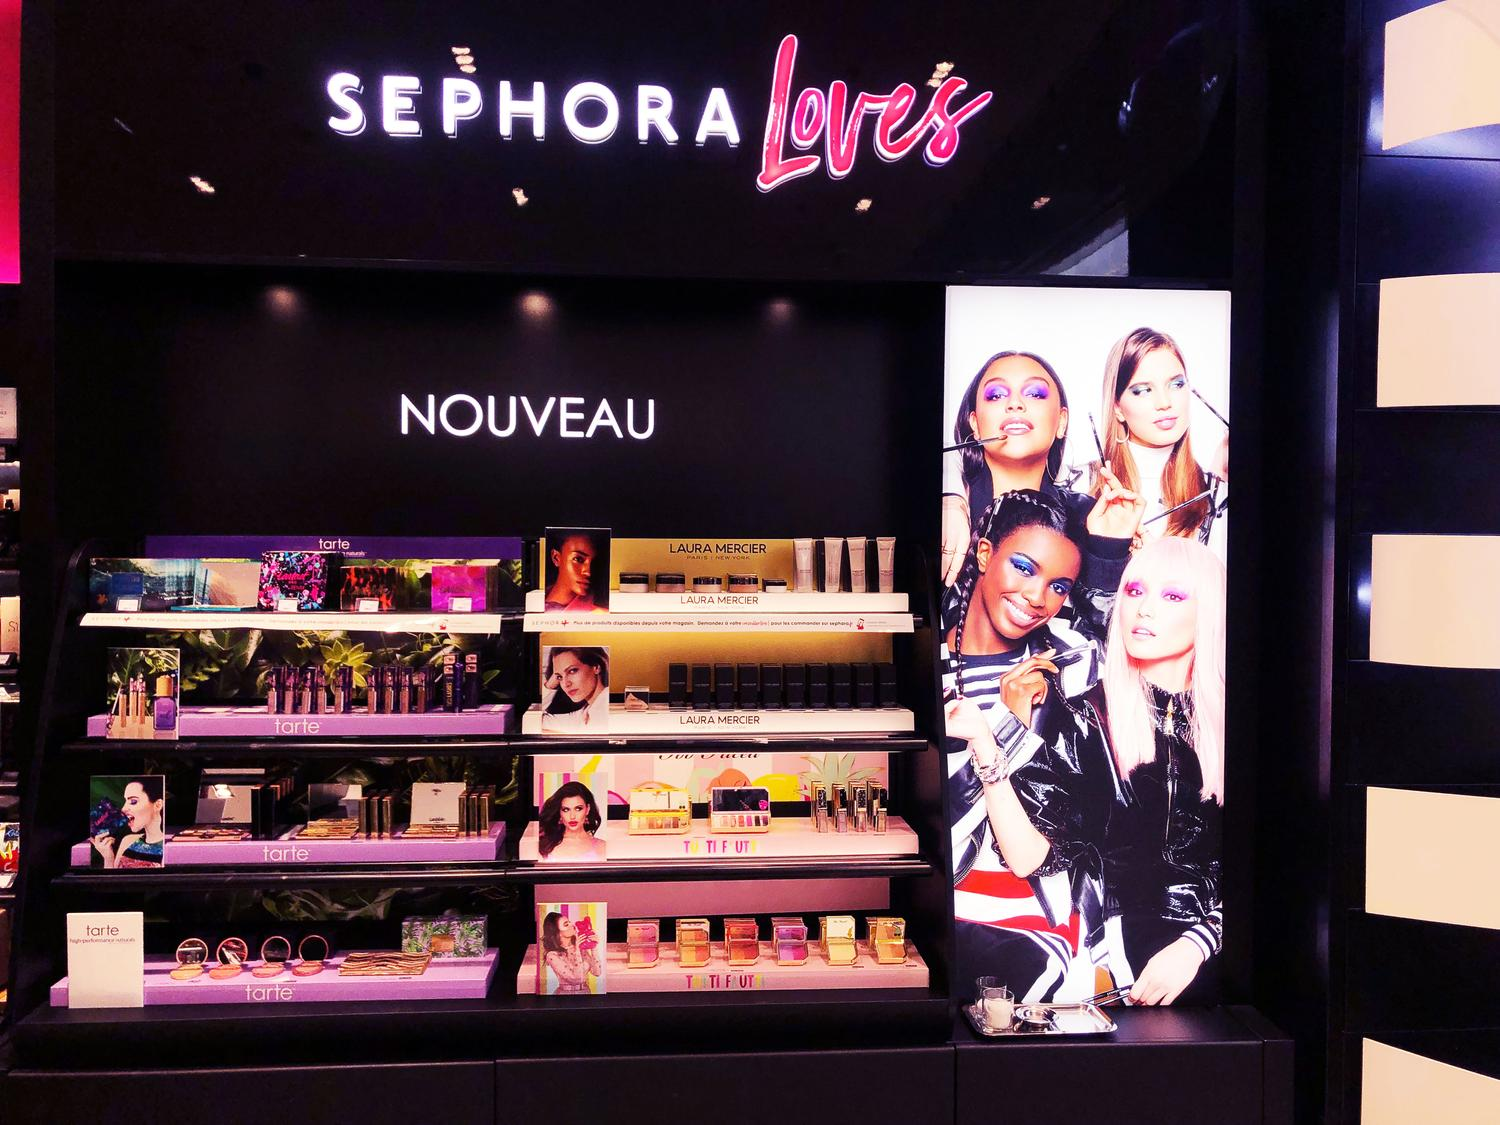 tarte-media6-trade-marketing-gondole-mural-sephora-loves